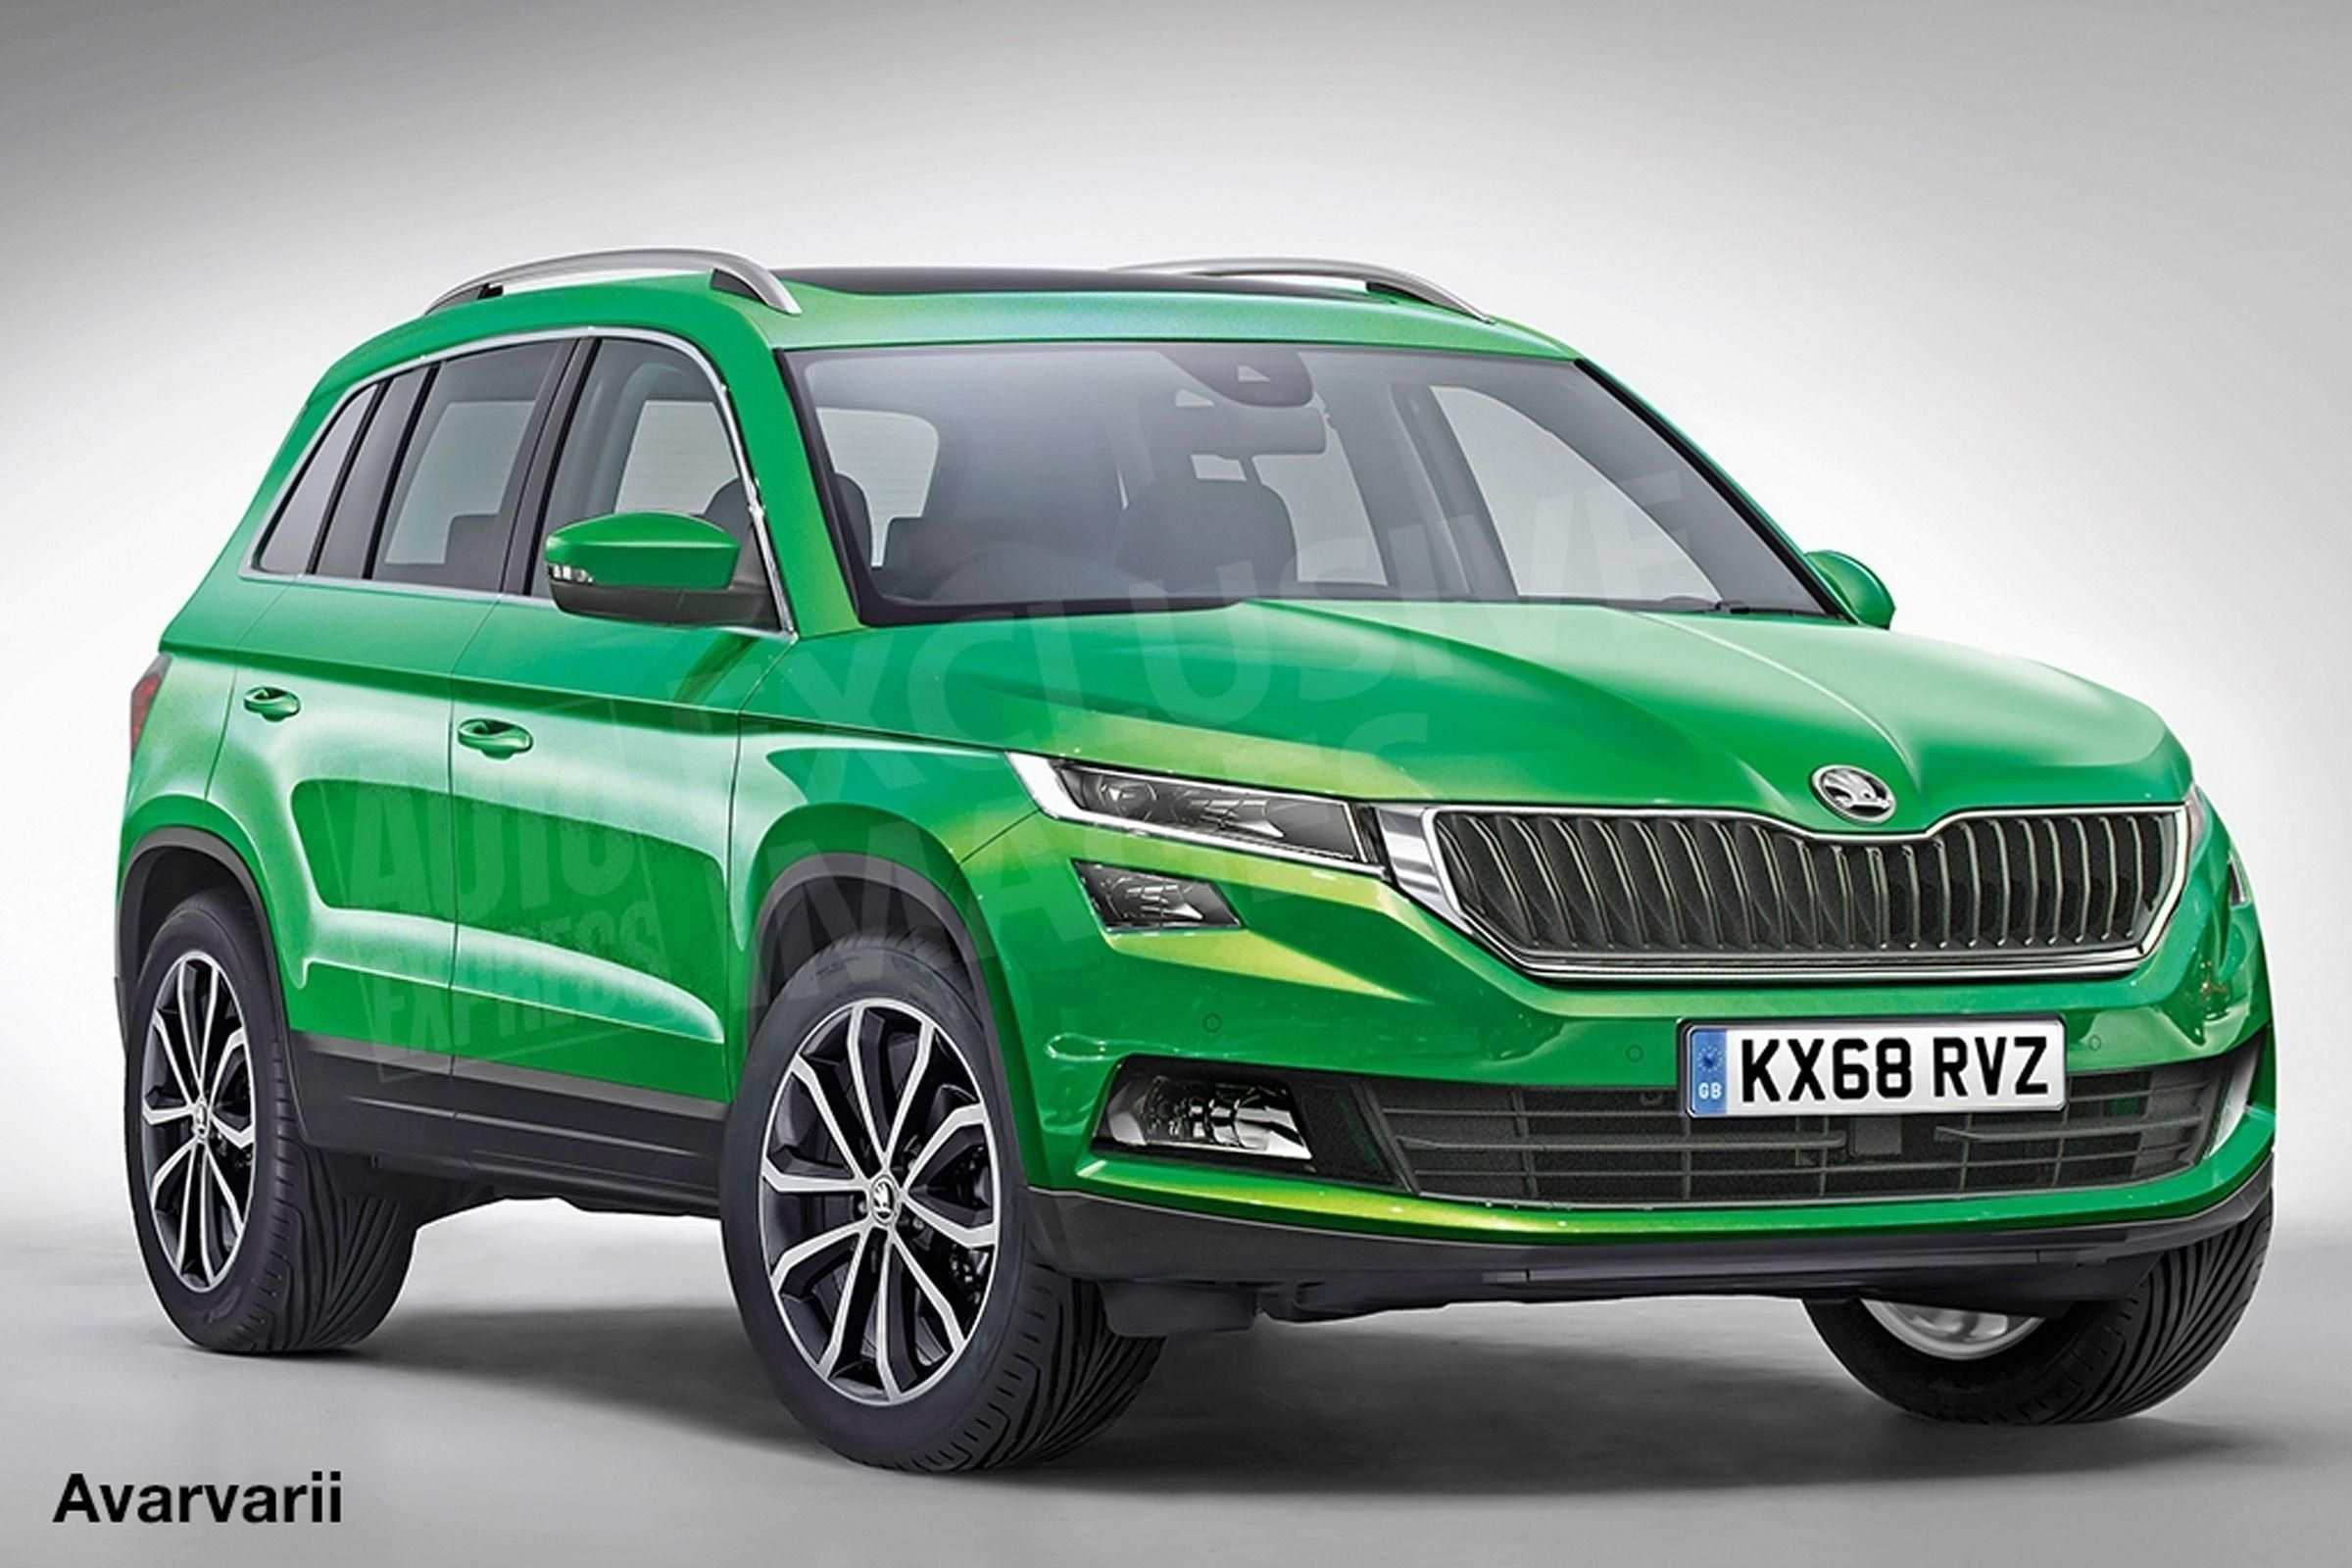 68 The Best 2020 Skoda Snowman Full Preview Rumors